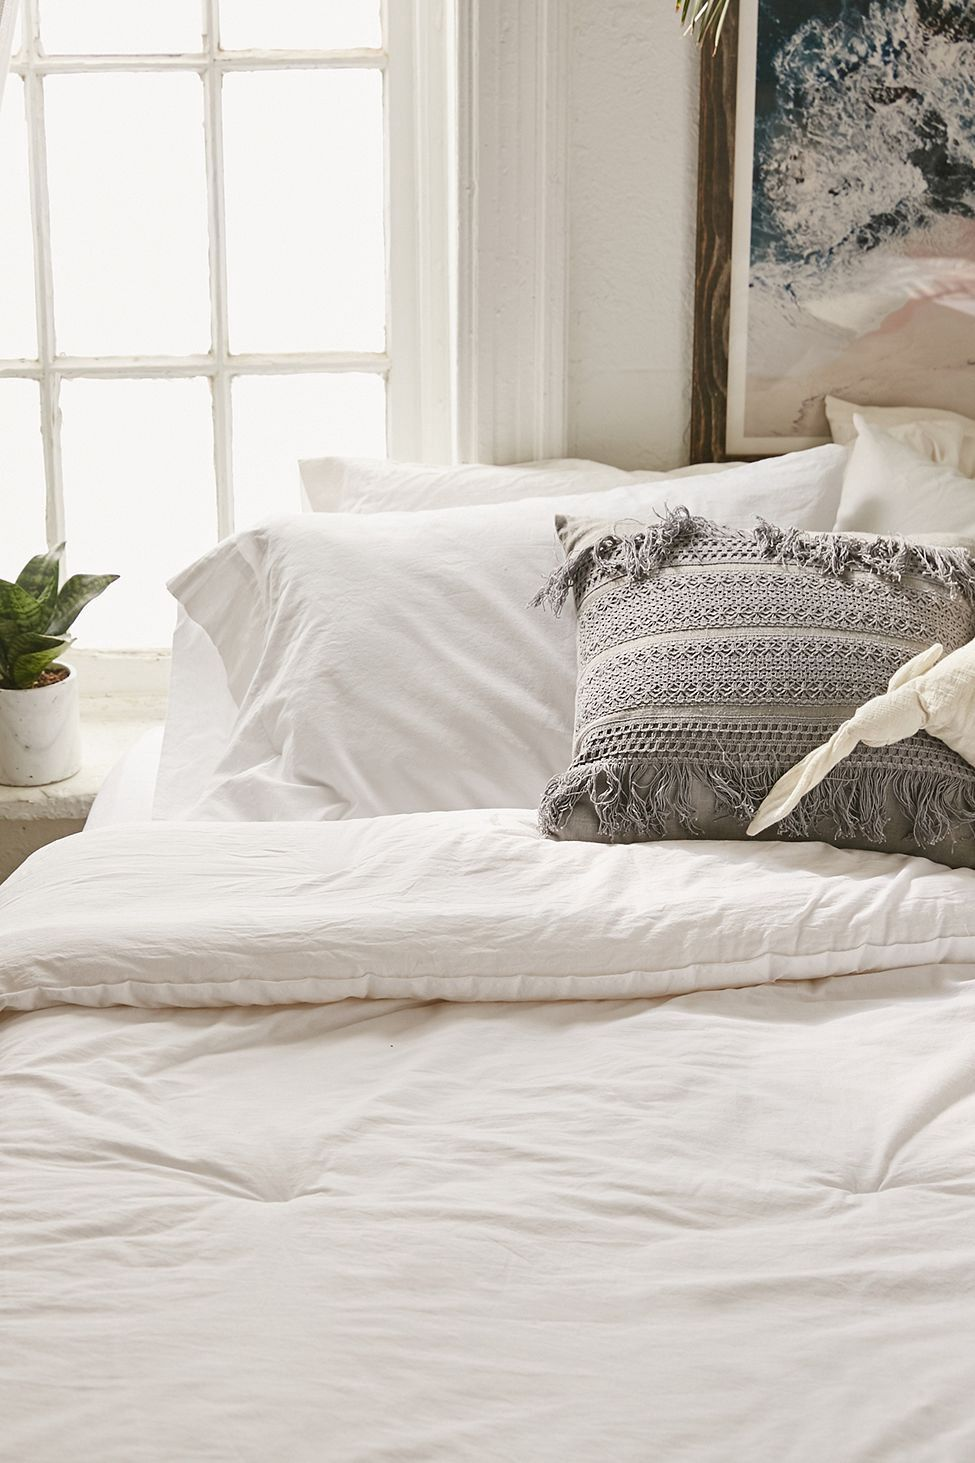 Urban Outfitters Washed Cotton Comforter Snooze Set White King Cotton Comforters Luxury Bedding Cute Room Ideas